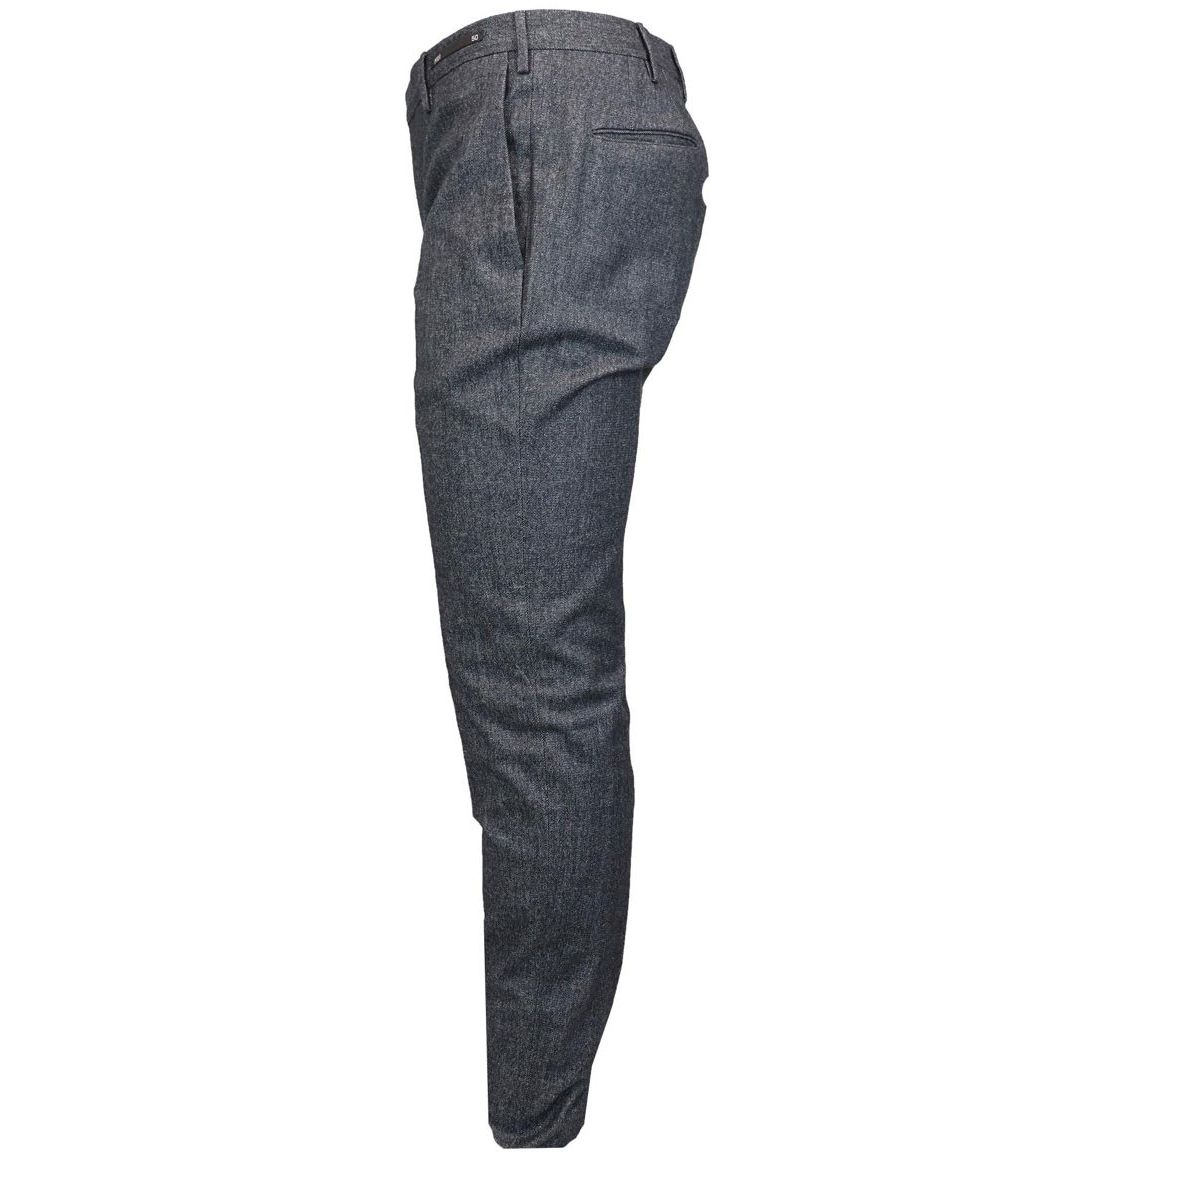 Skinny cotton blend trousers with america pocket Anthracite PT01